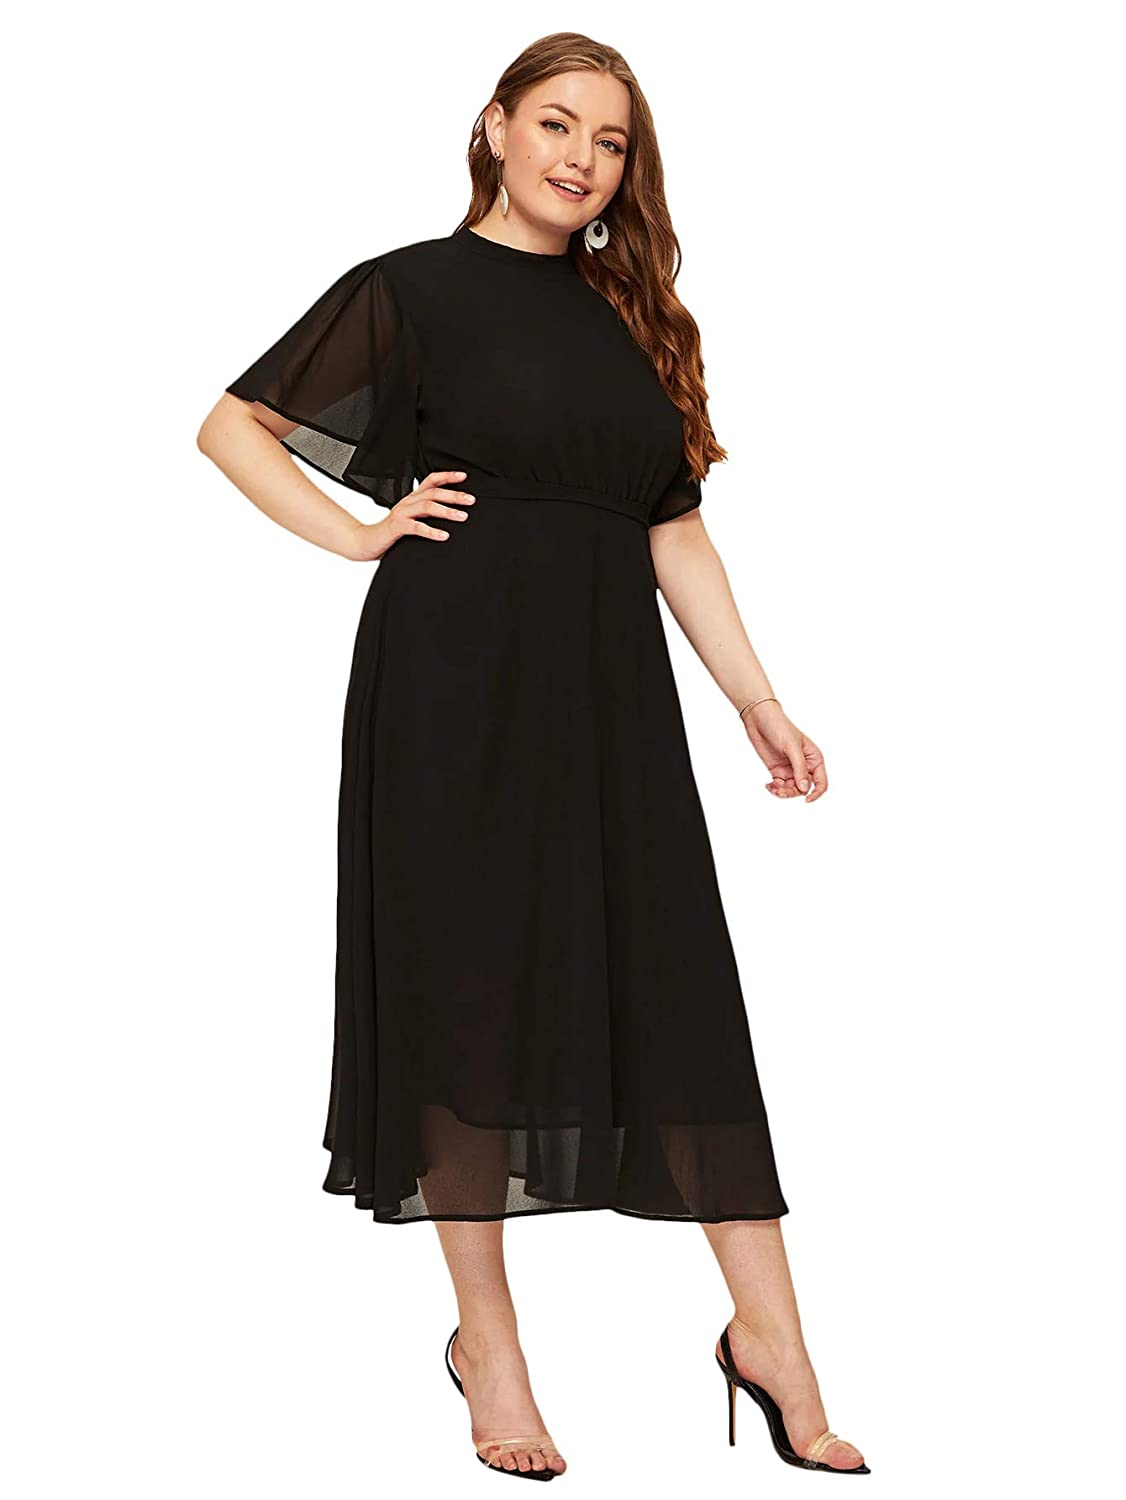 1930s Evening Dresses | Old Hollywood Silver Screen Dresses Milumia Womens Plus Size Formal Chiffon Cocktail Flounce Sleeve Maxi Party Dress $36.99 AT vintagedancer.com